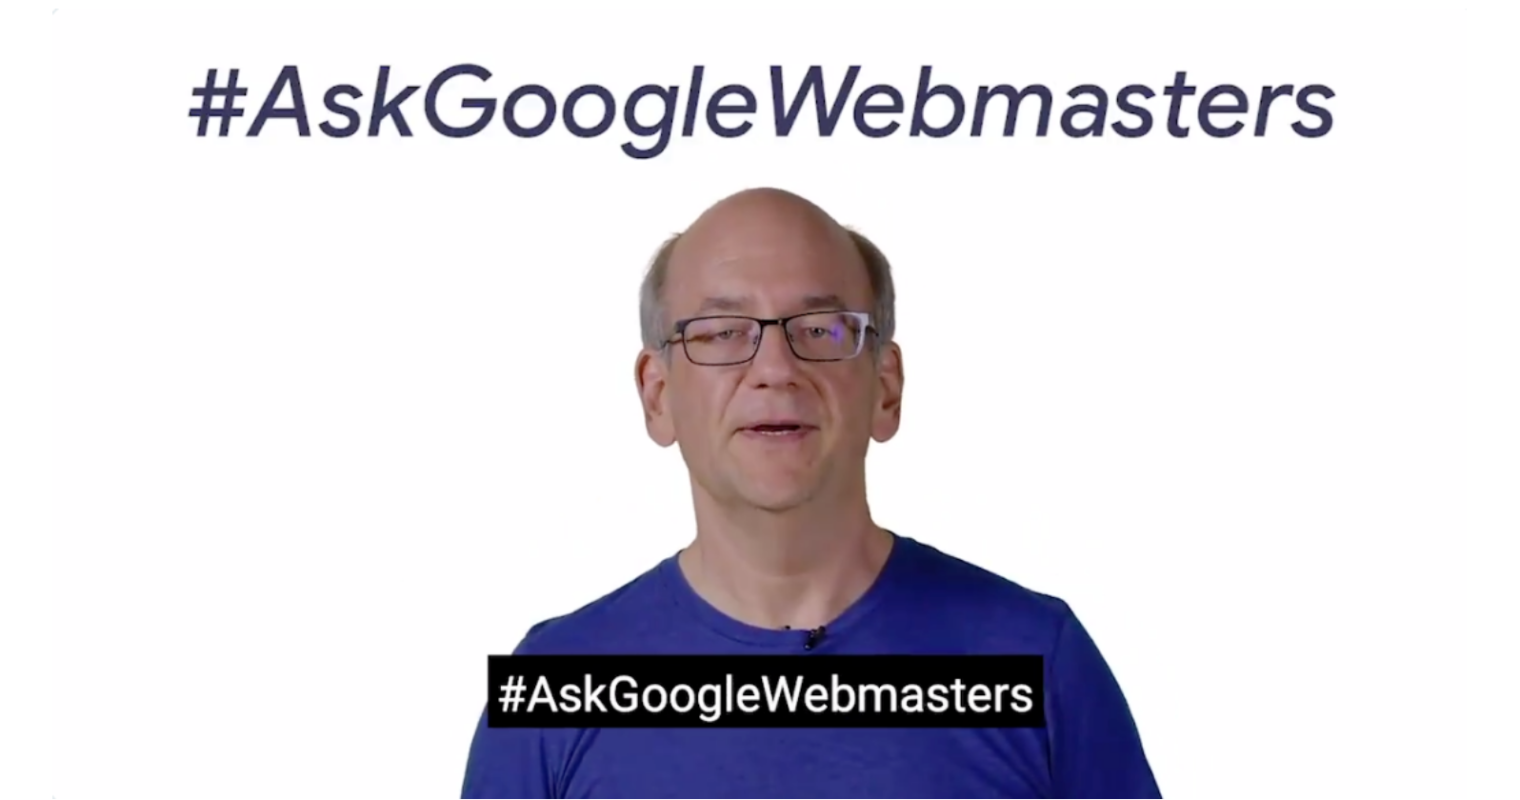 Google is Launching a New Q&A Video Series With John Mueller